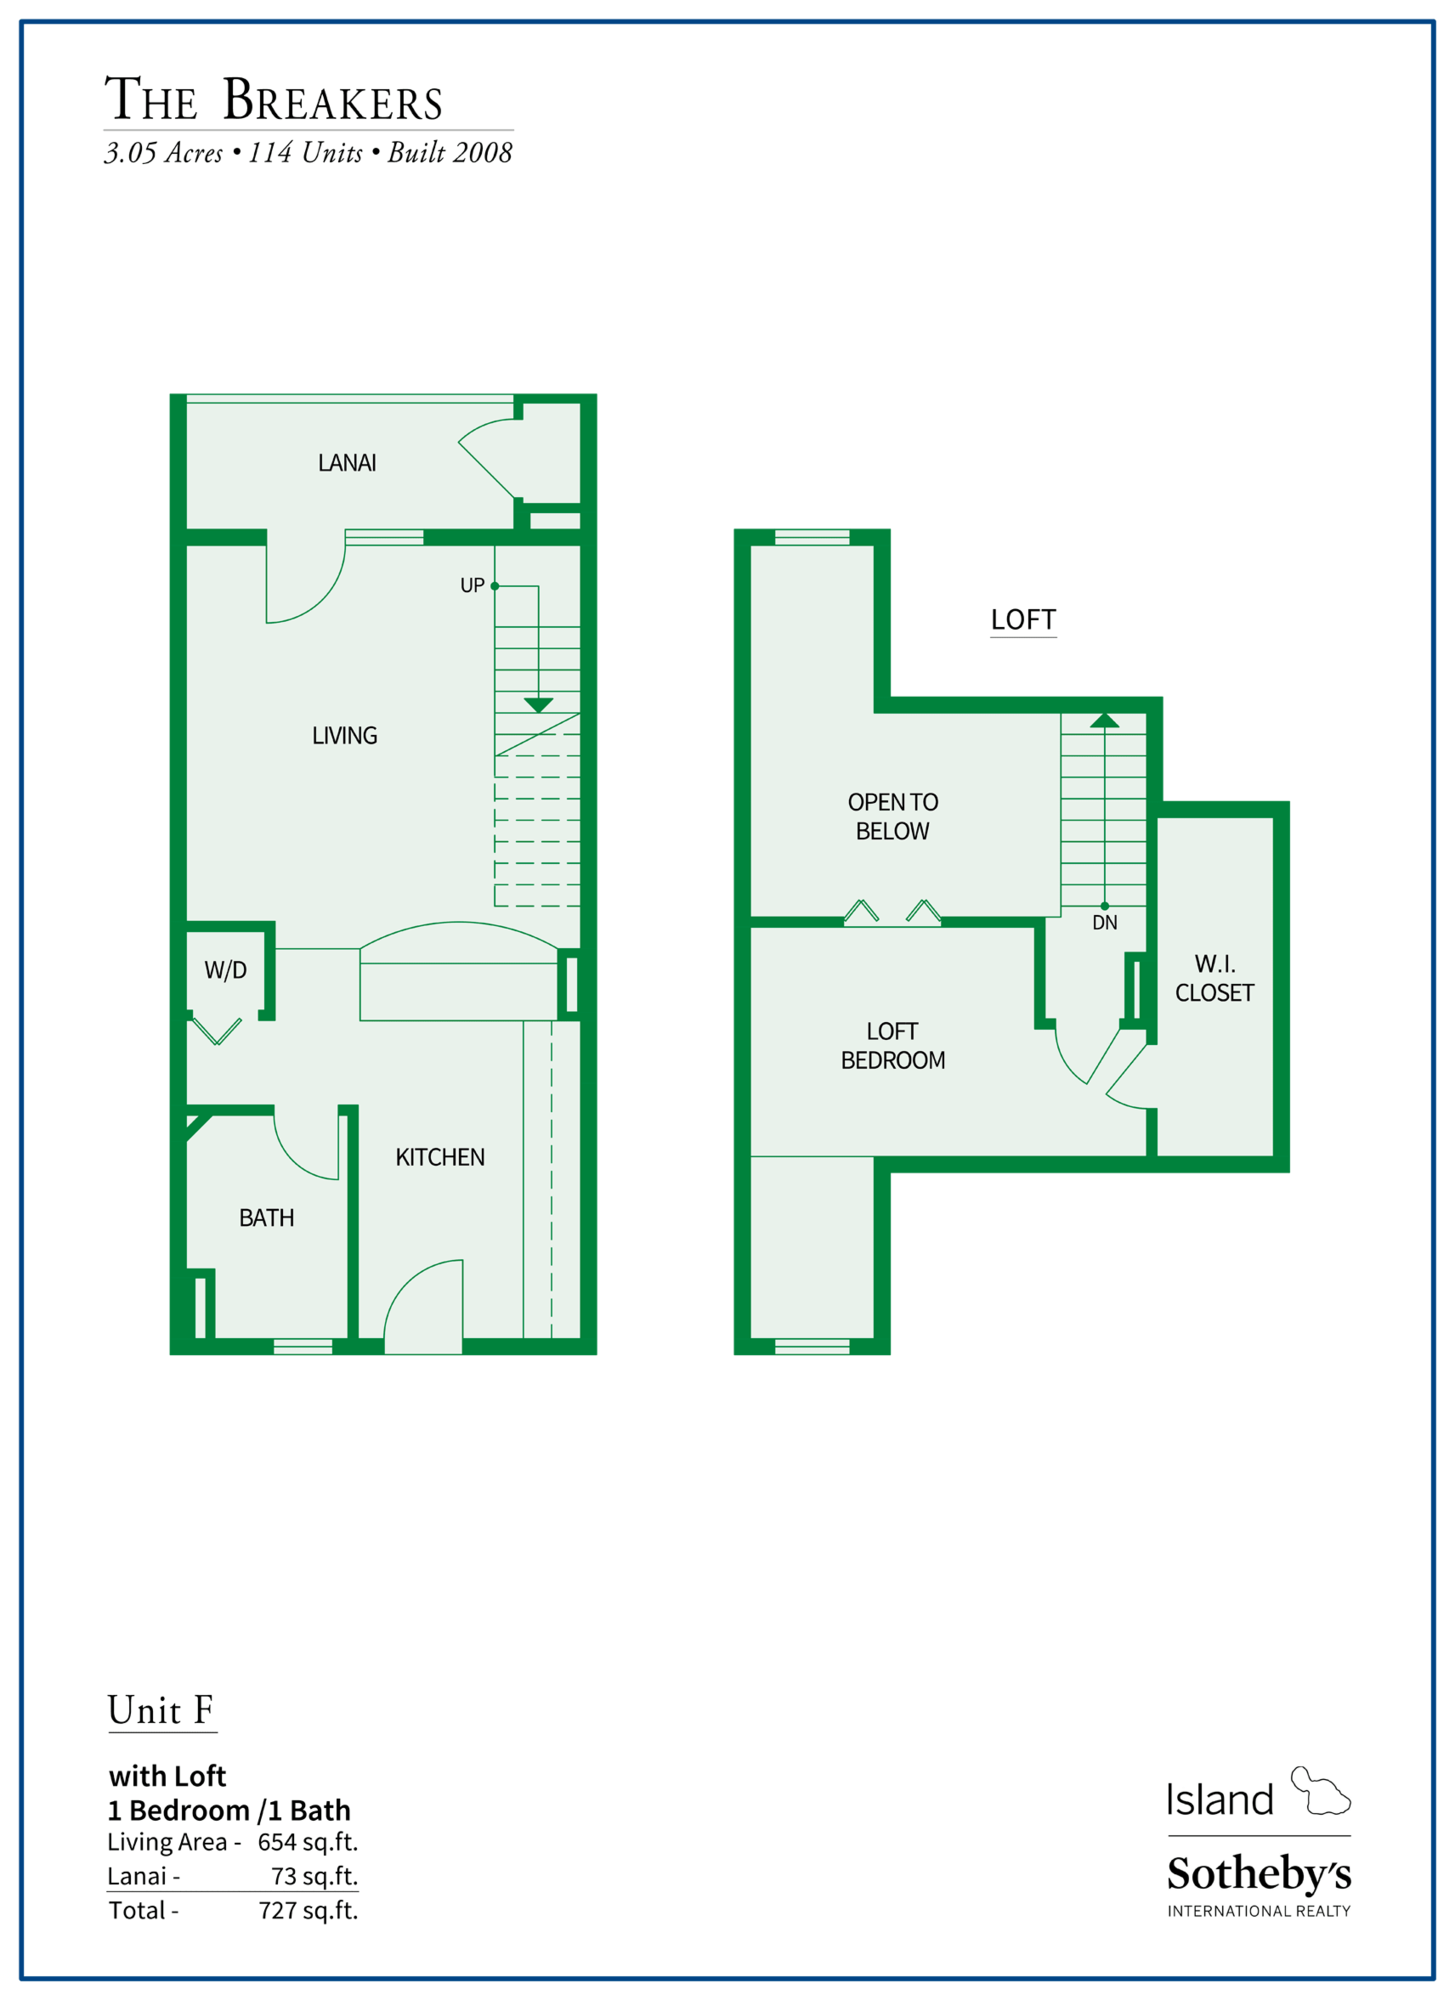 The Breakers Maui Floor Plan F